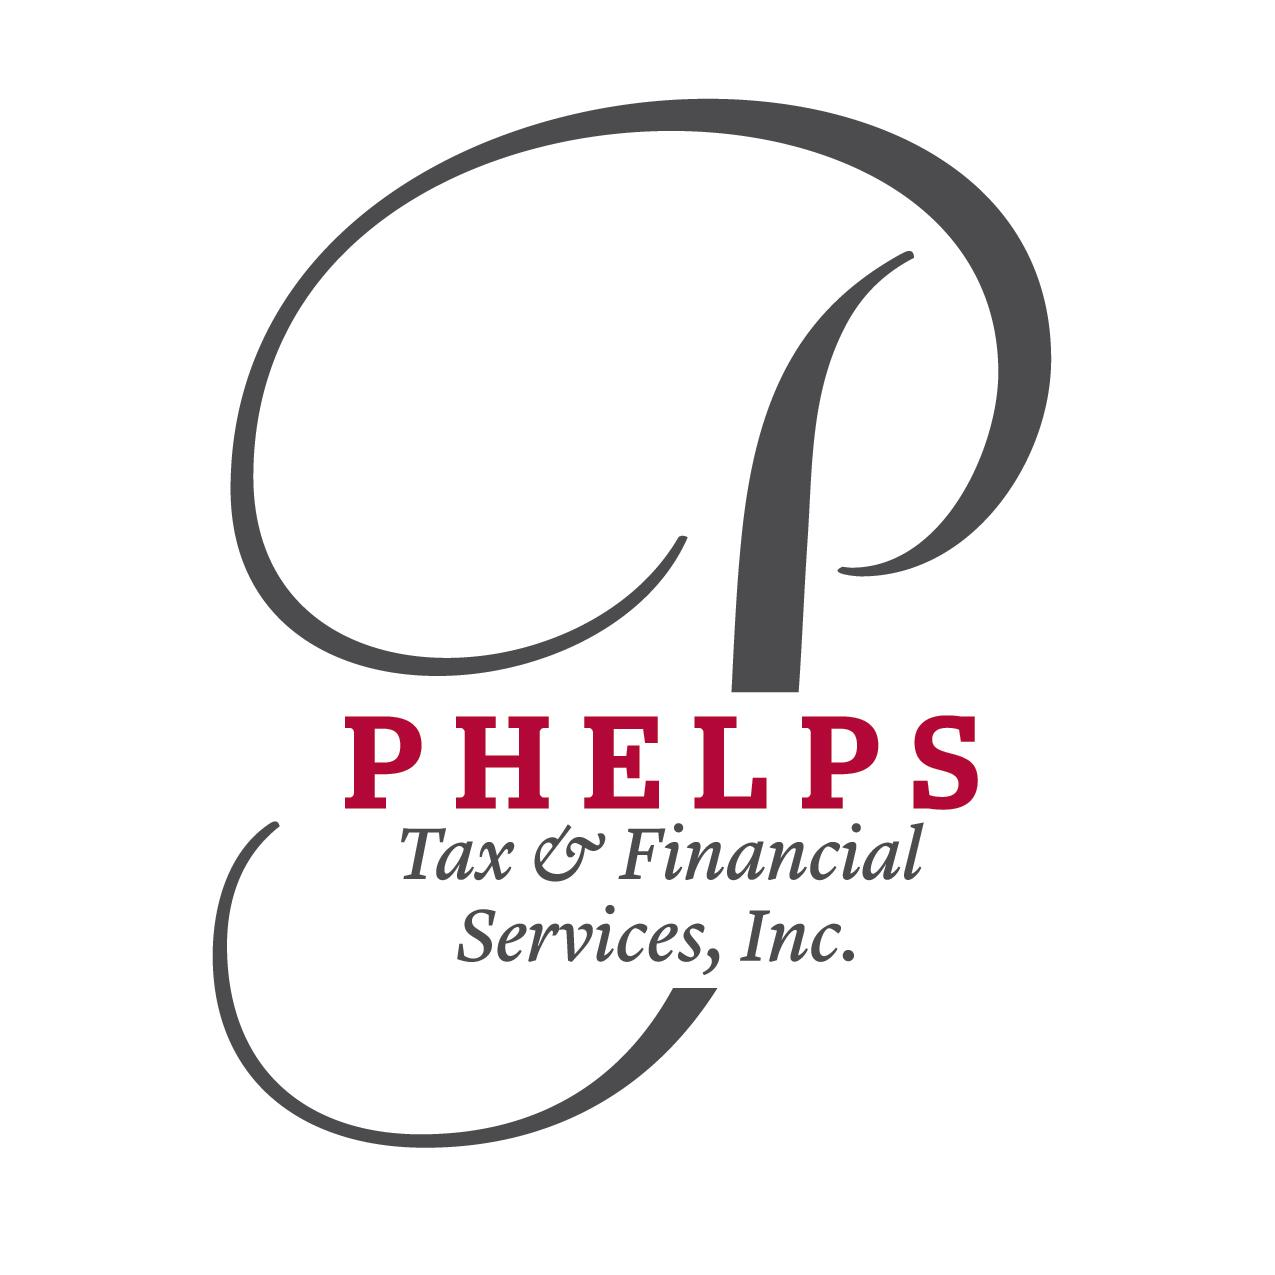 PHELPS TAX & FINANCIAL SERVICES, INC.